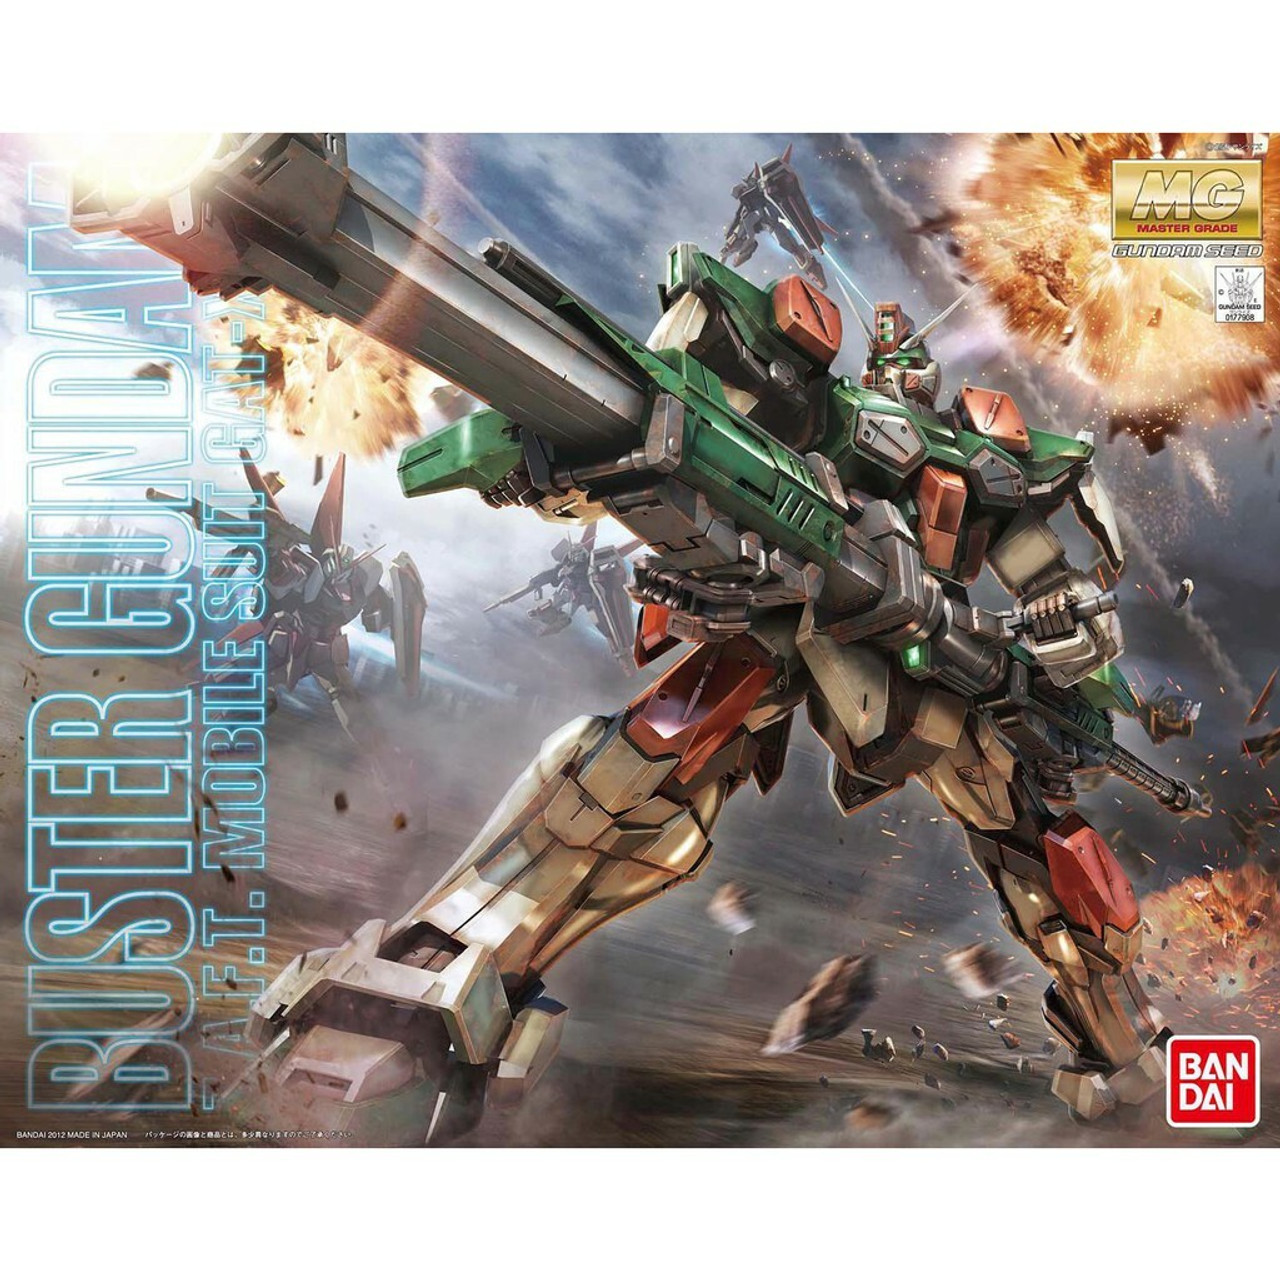 MG Buster Runners